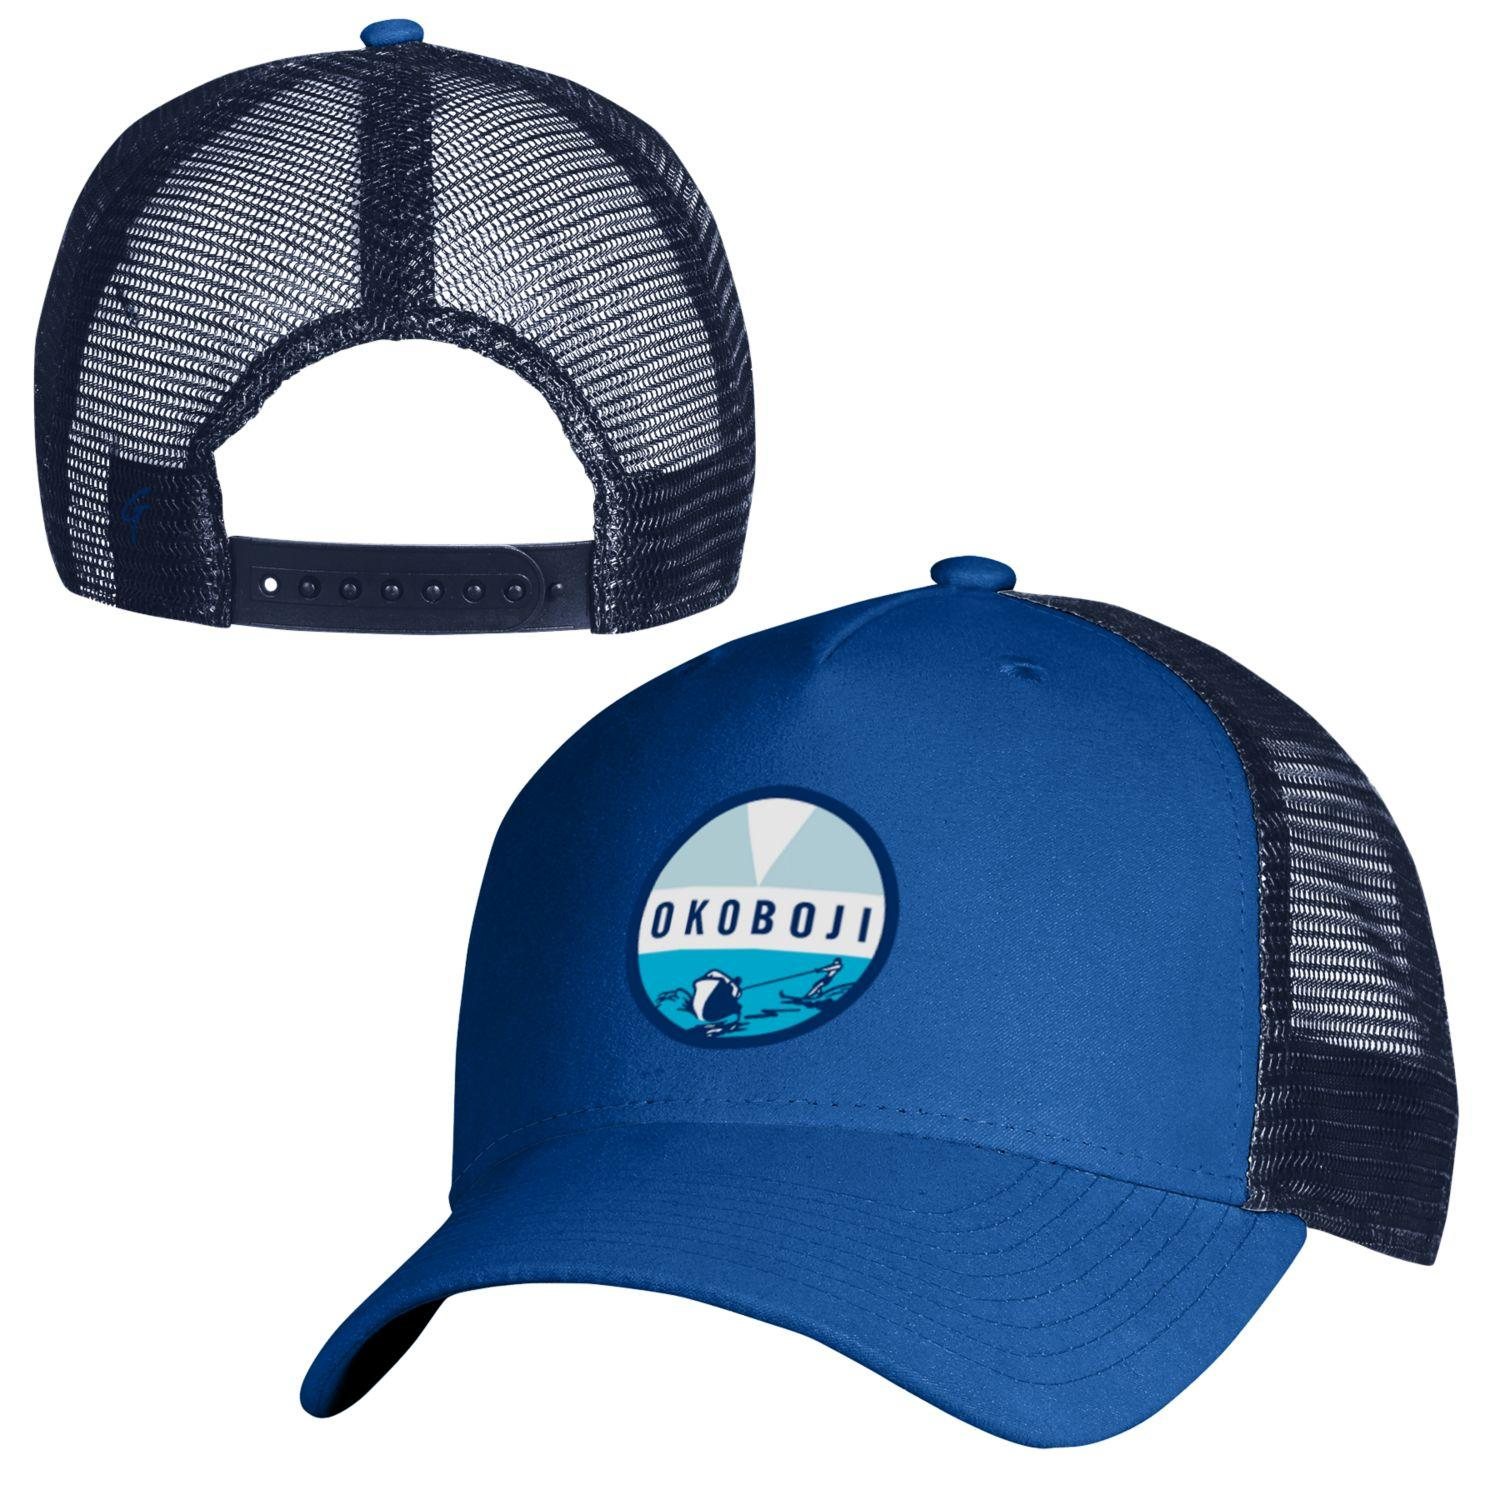 Okoboji Blue SUEDED TRUCKER